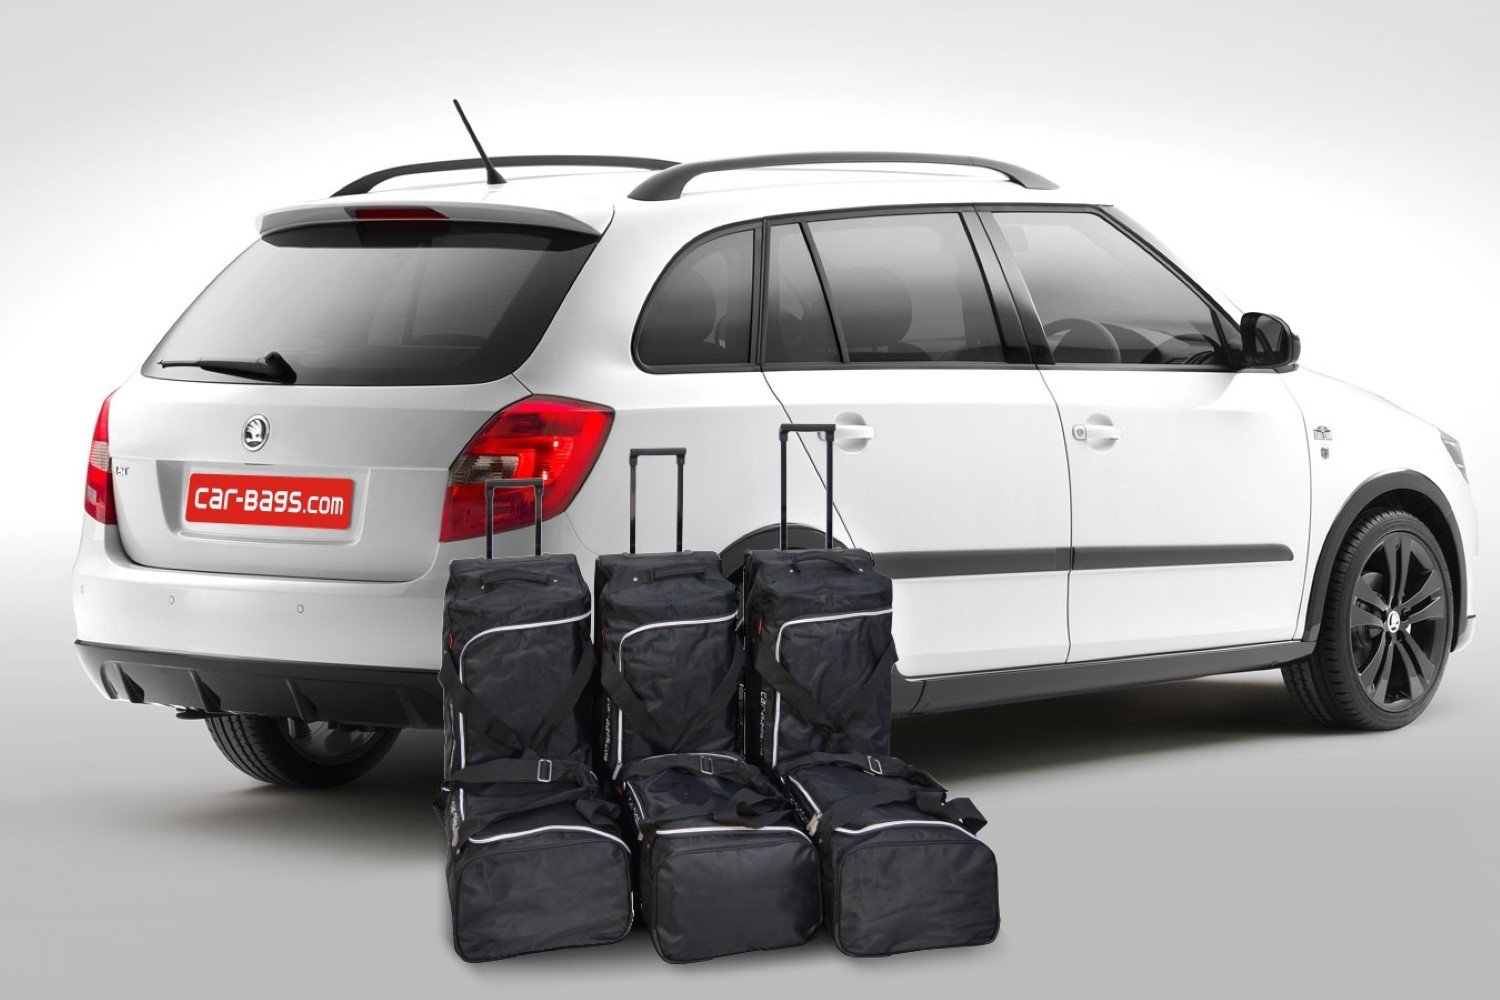 fabia skoda fabia ii combi 5j 2007 2014 travel bag set. Black Bedroom Furniture Sets. Home Design Ideas